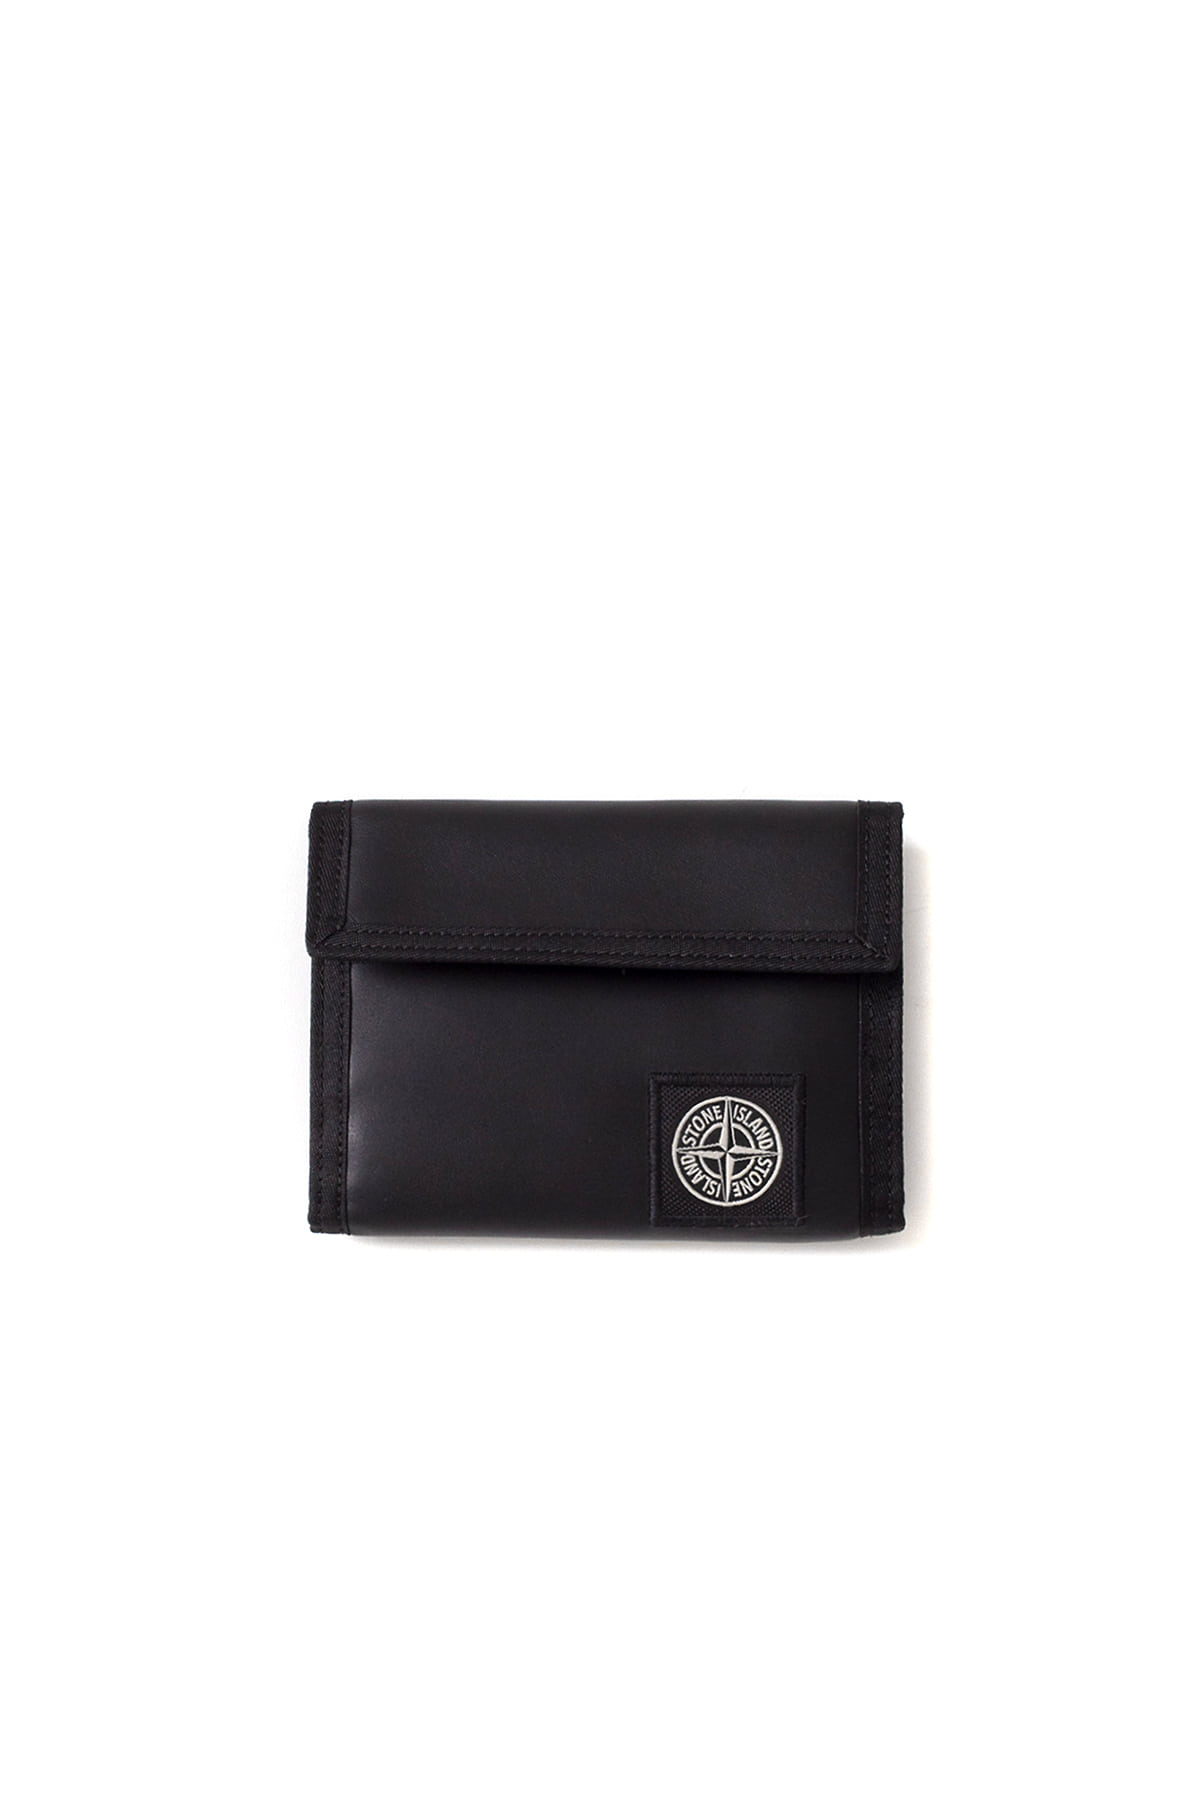 Stone Island : Leather Wallet (Black)